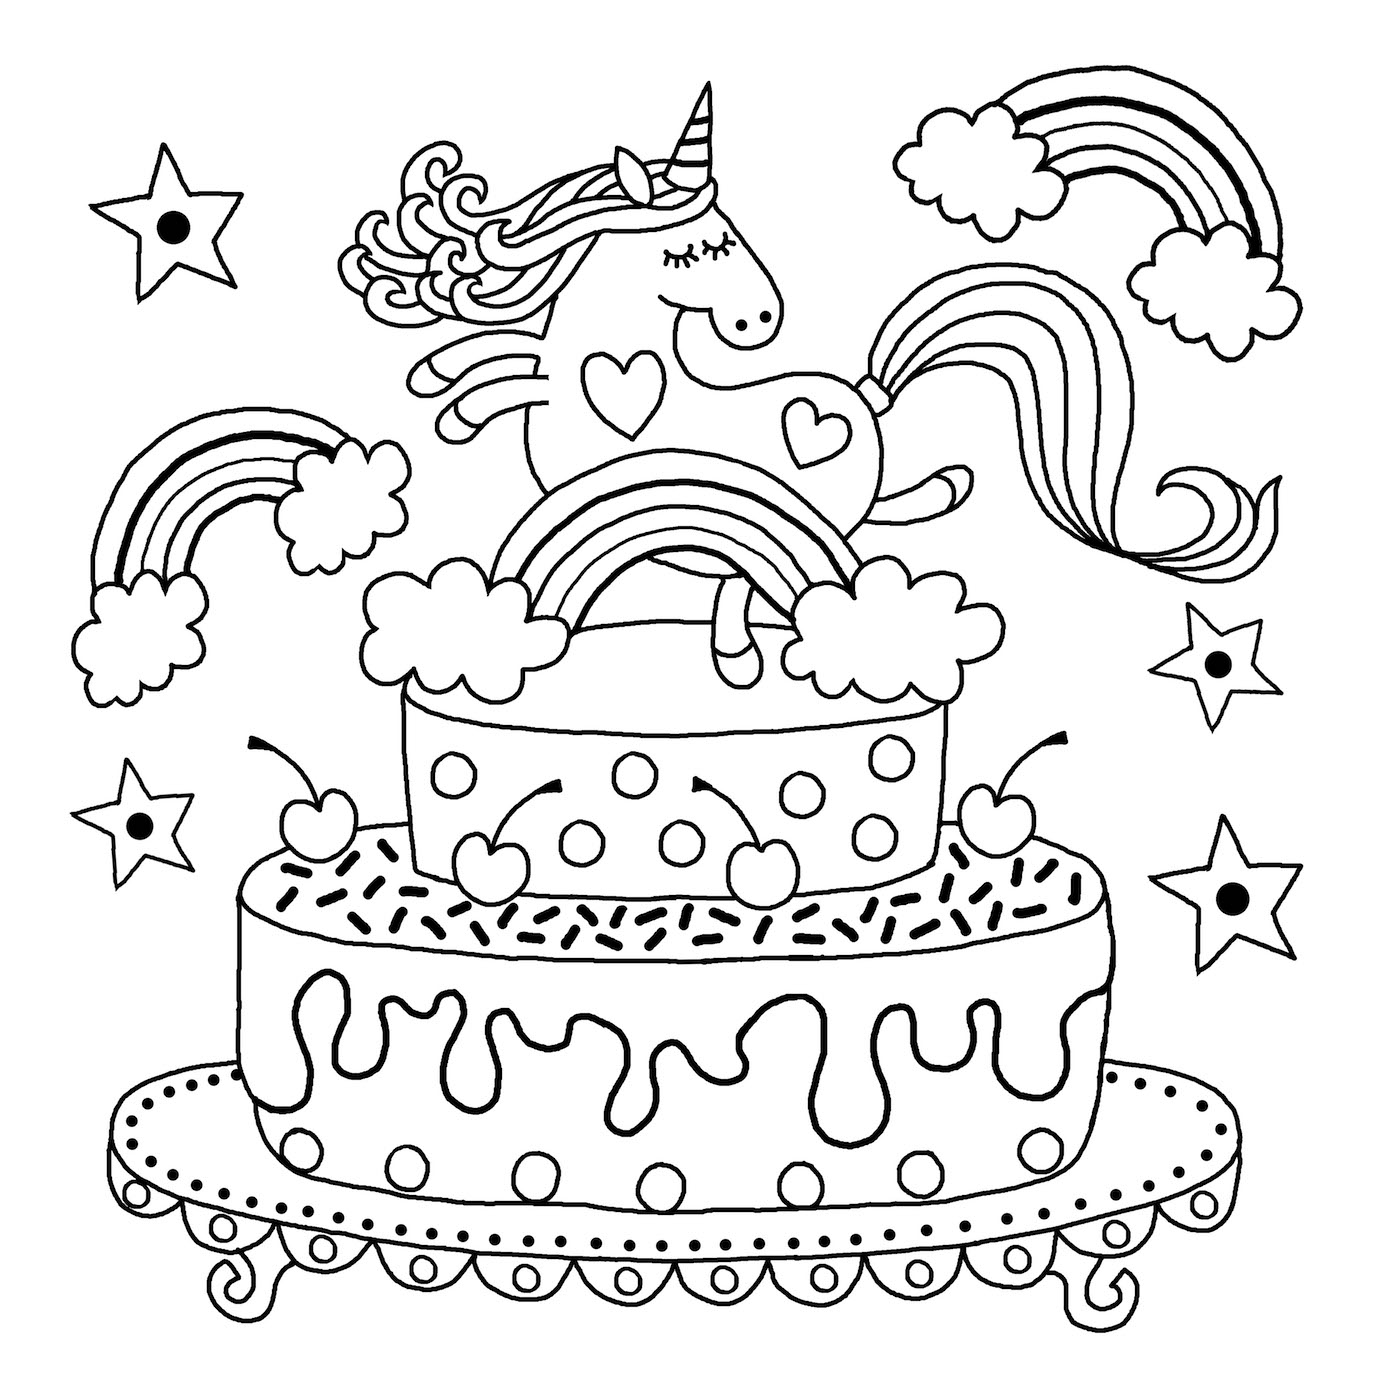 unicorn print out get this printable unicorn coloring pages online 91060 out unicorn print